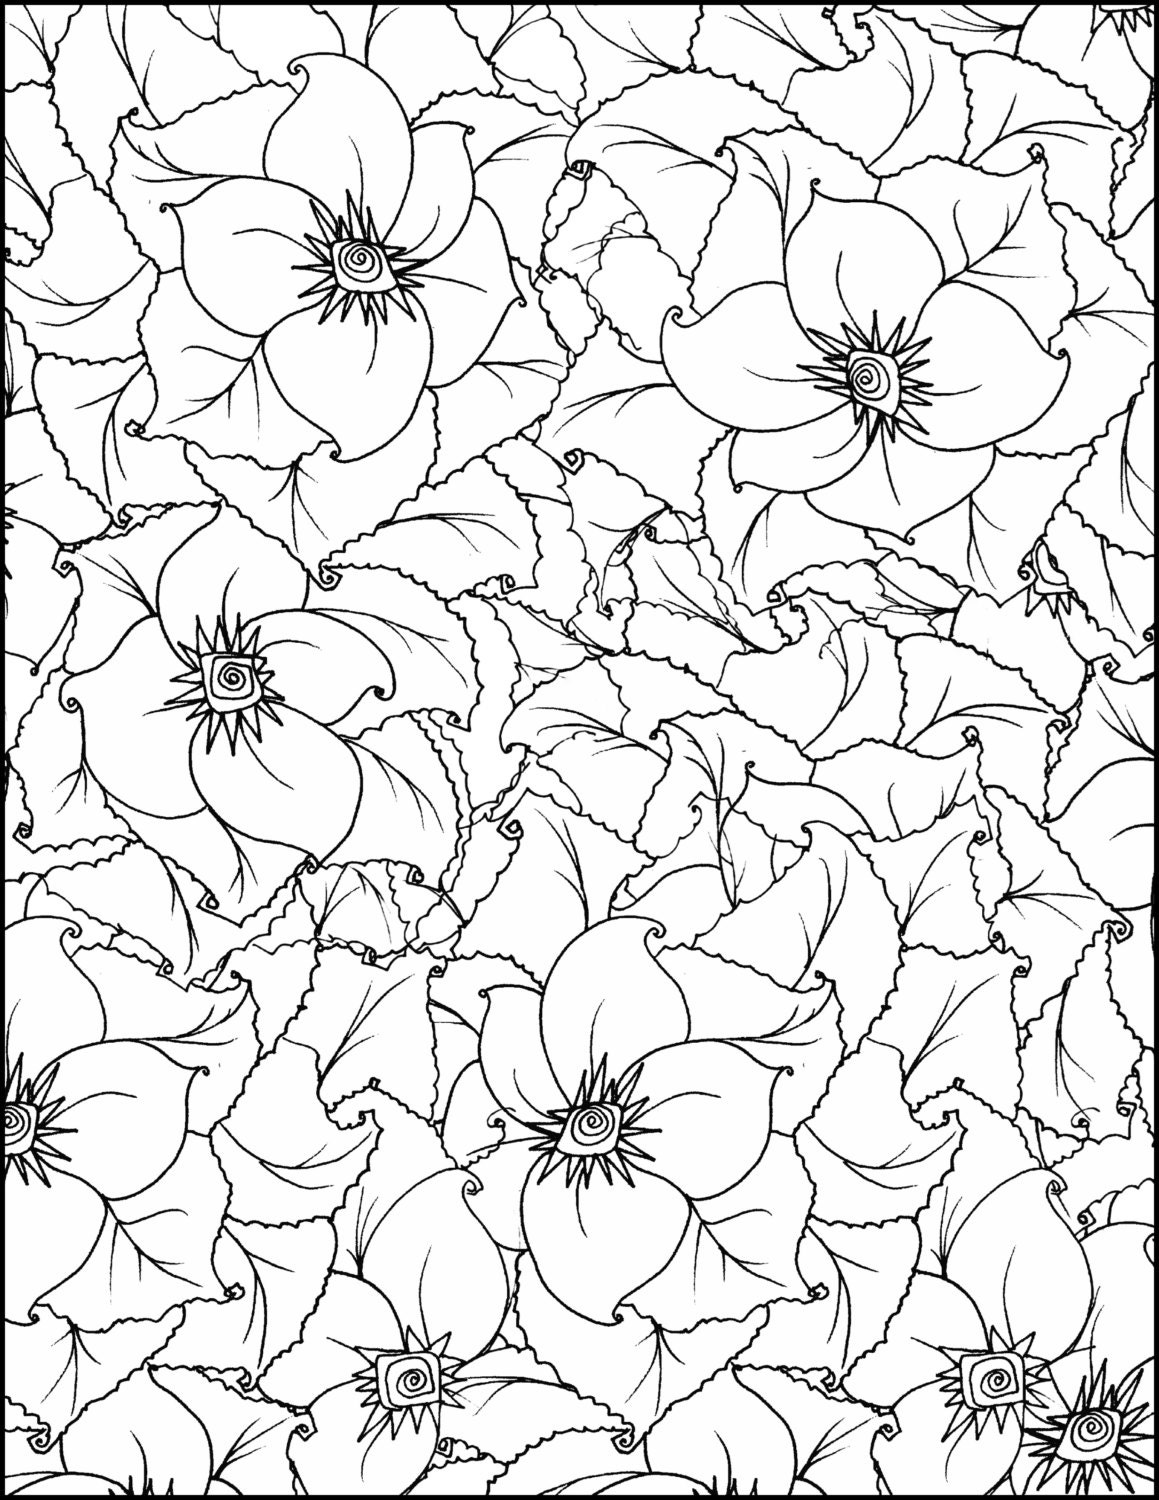 whimsical flowers coloring pages - photo#19